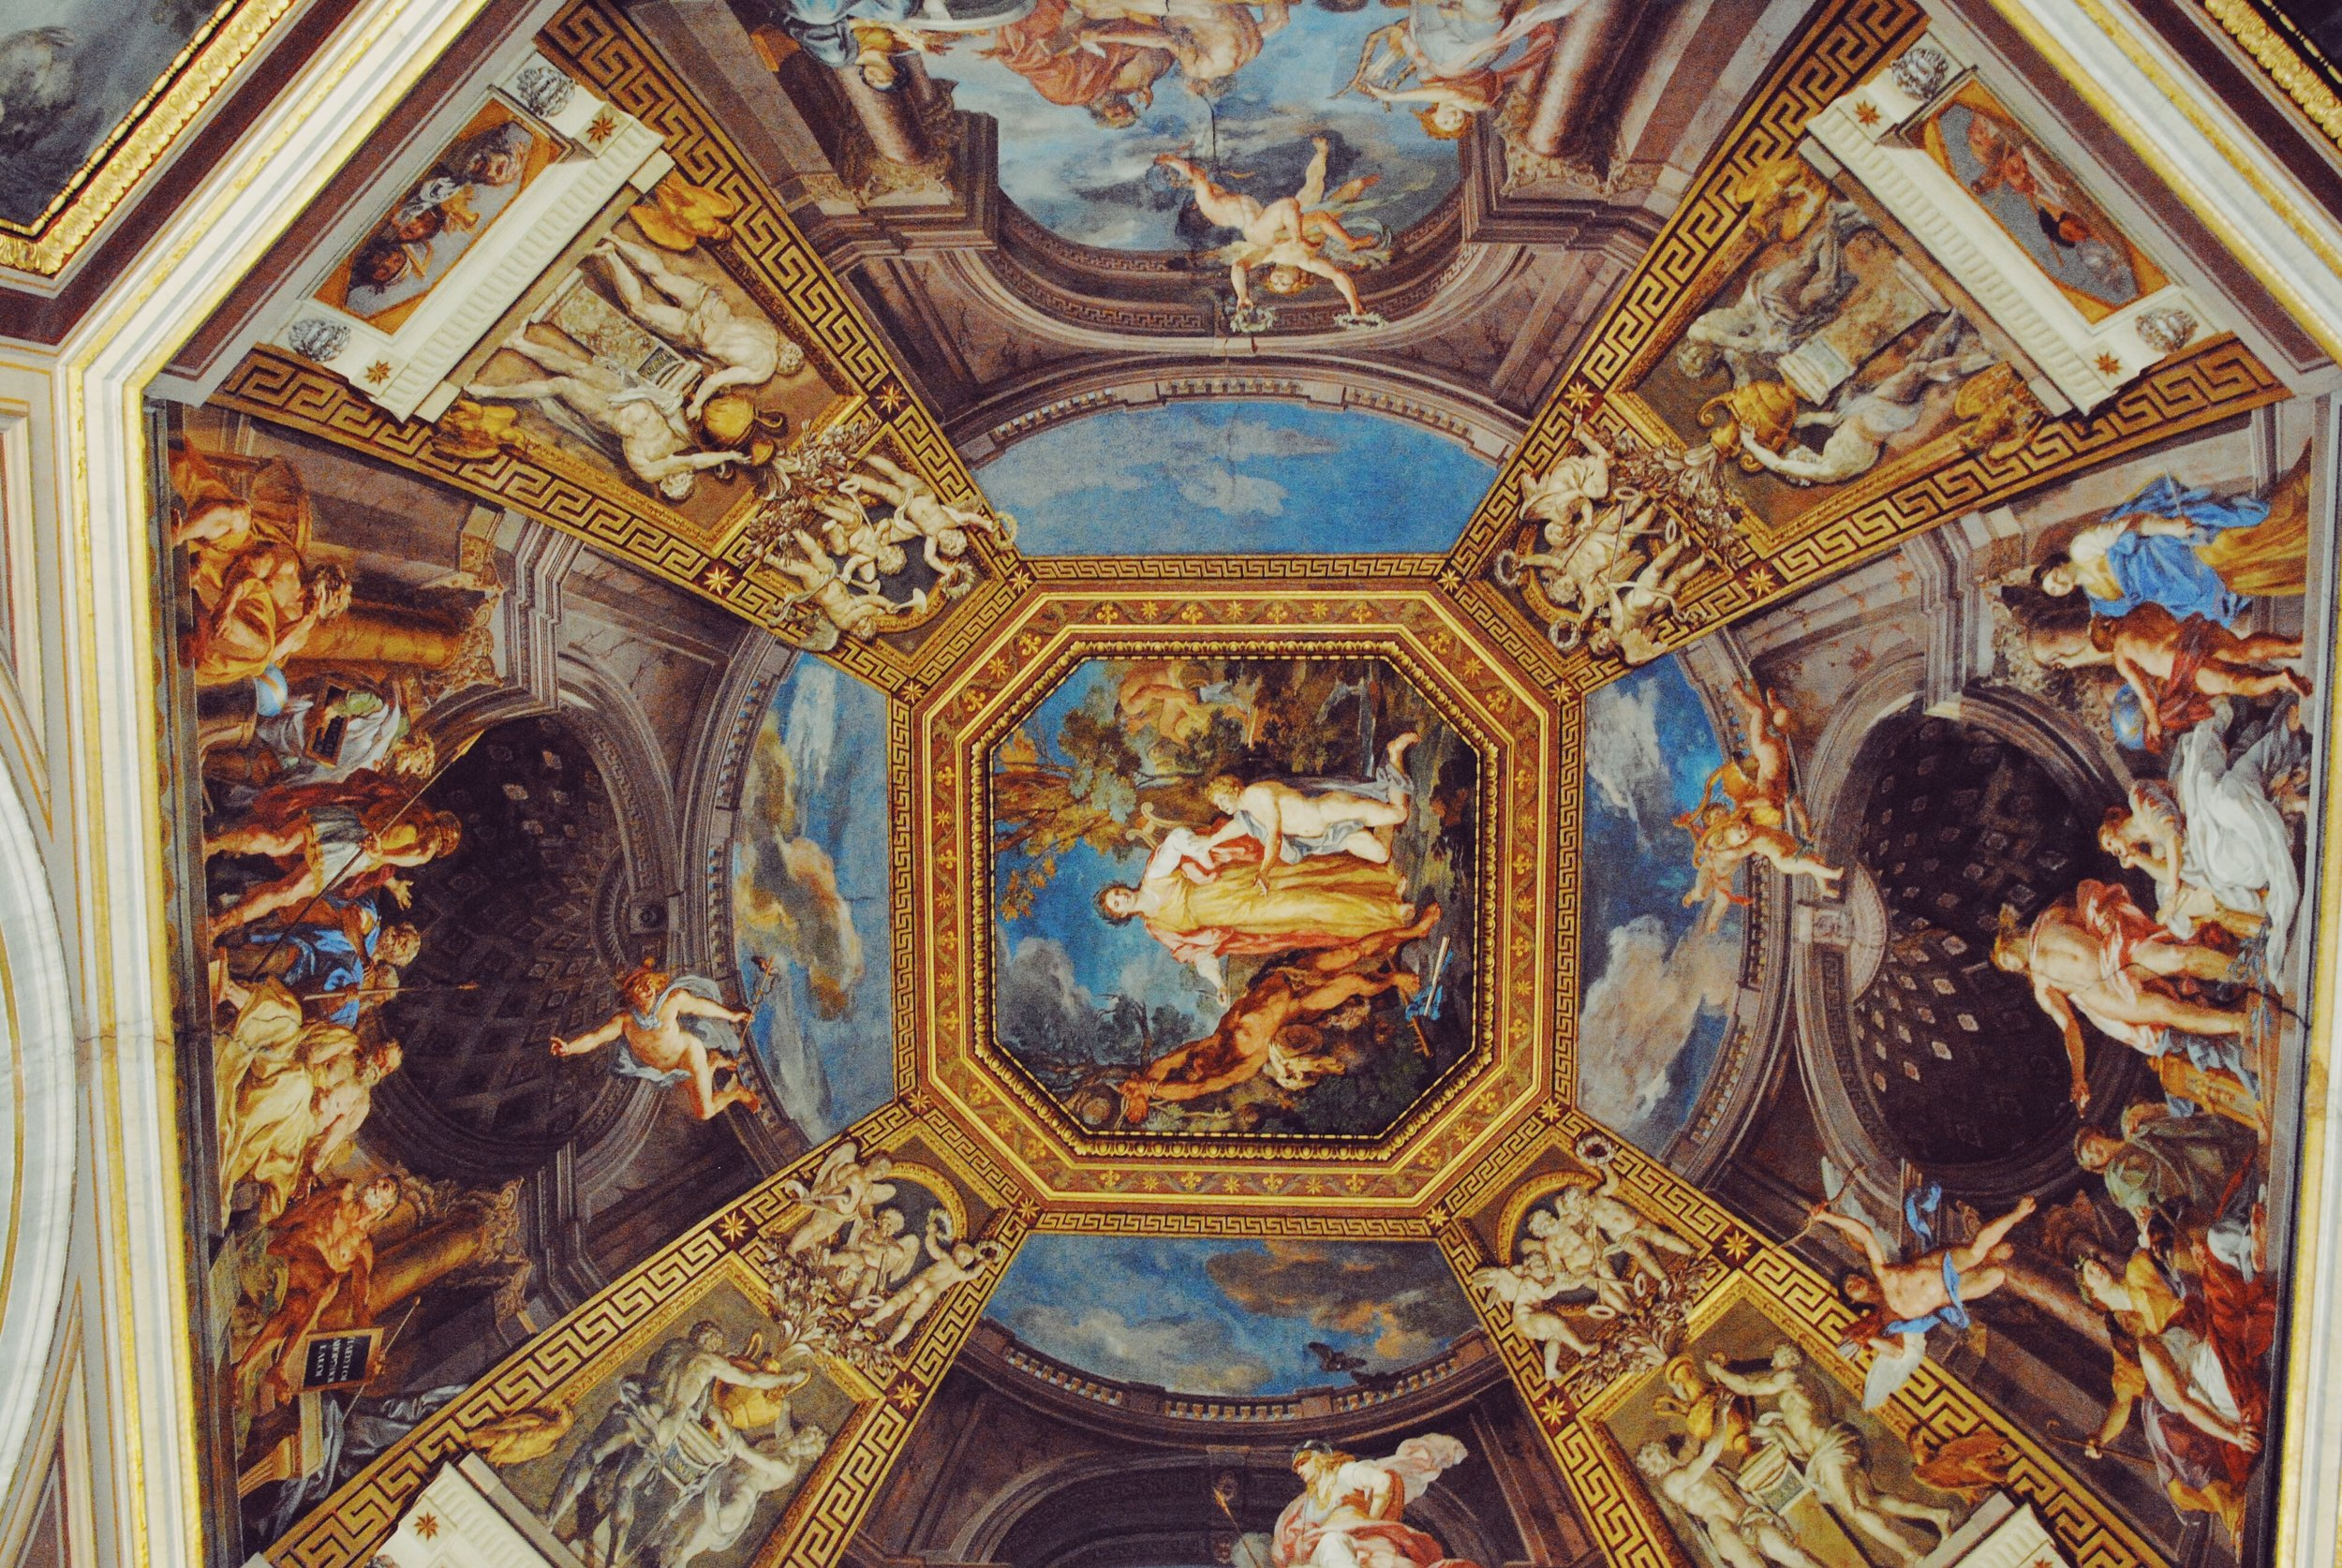 One of the many elaborate ceilings in the Vatican